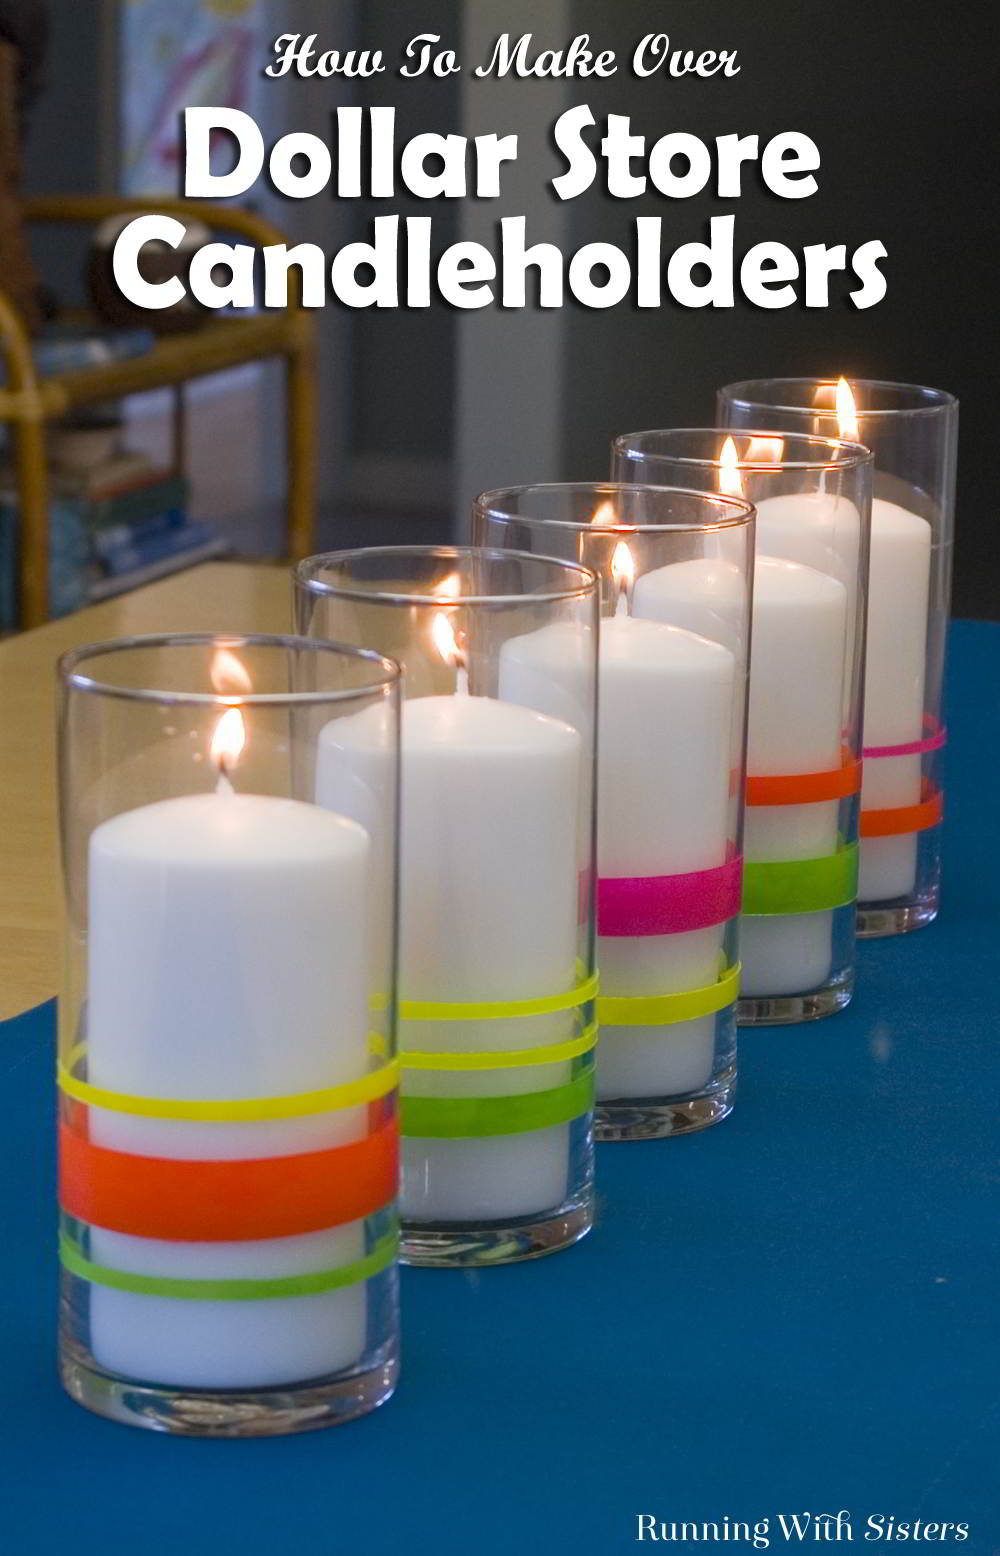 Makeover dollar store candle holders with masking tape and nail polish!